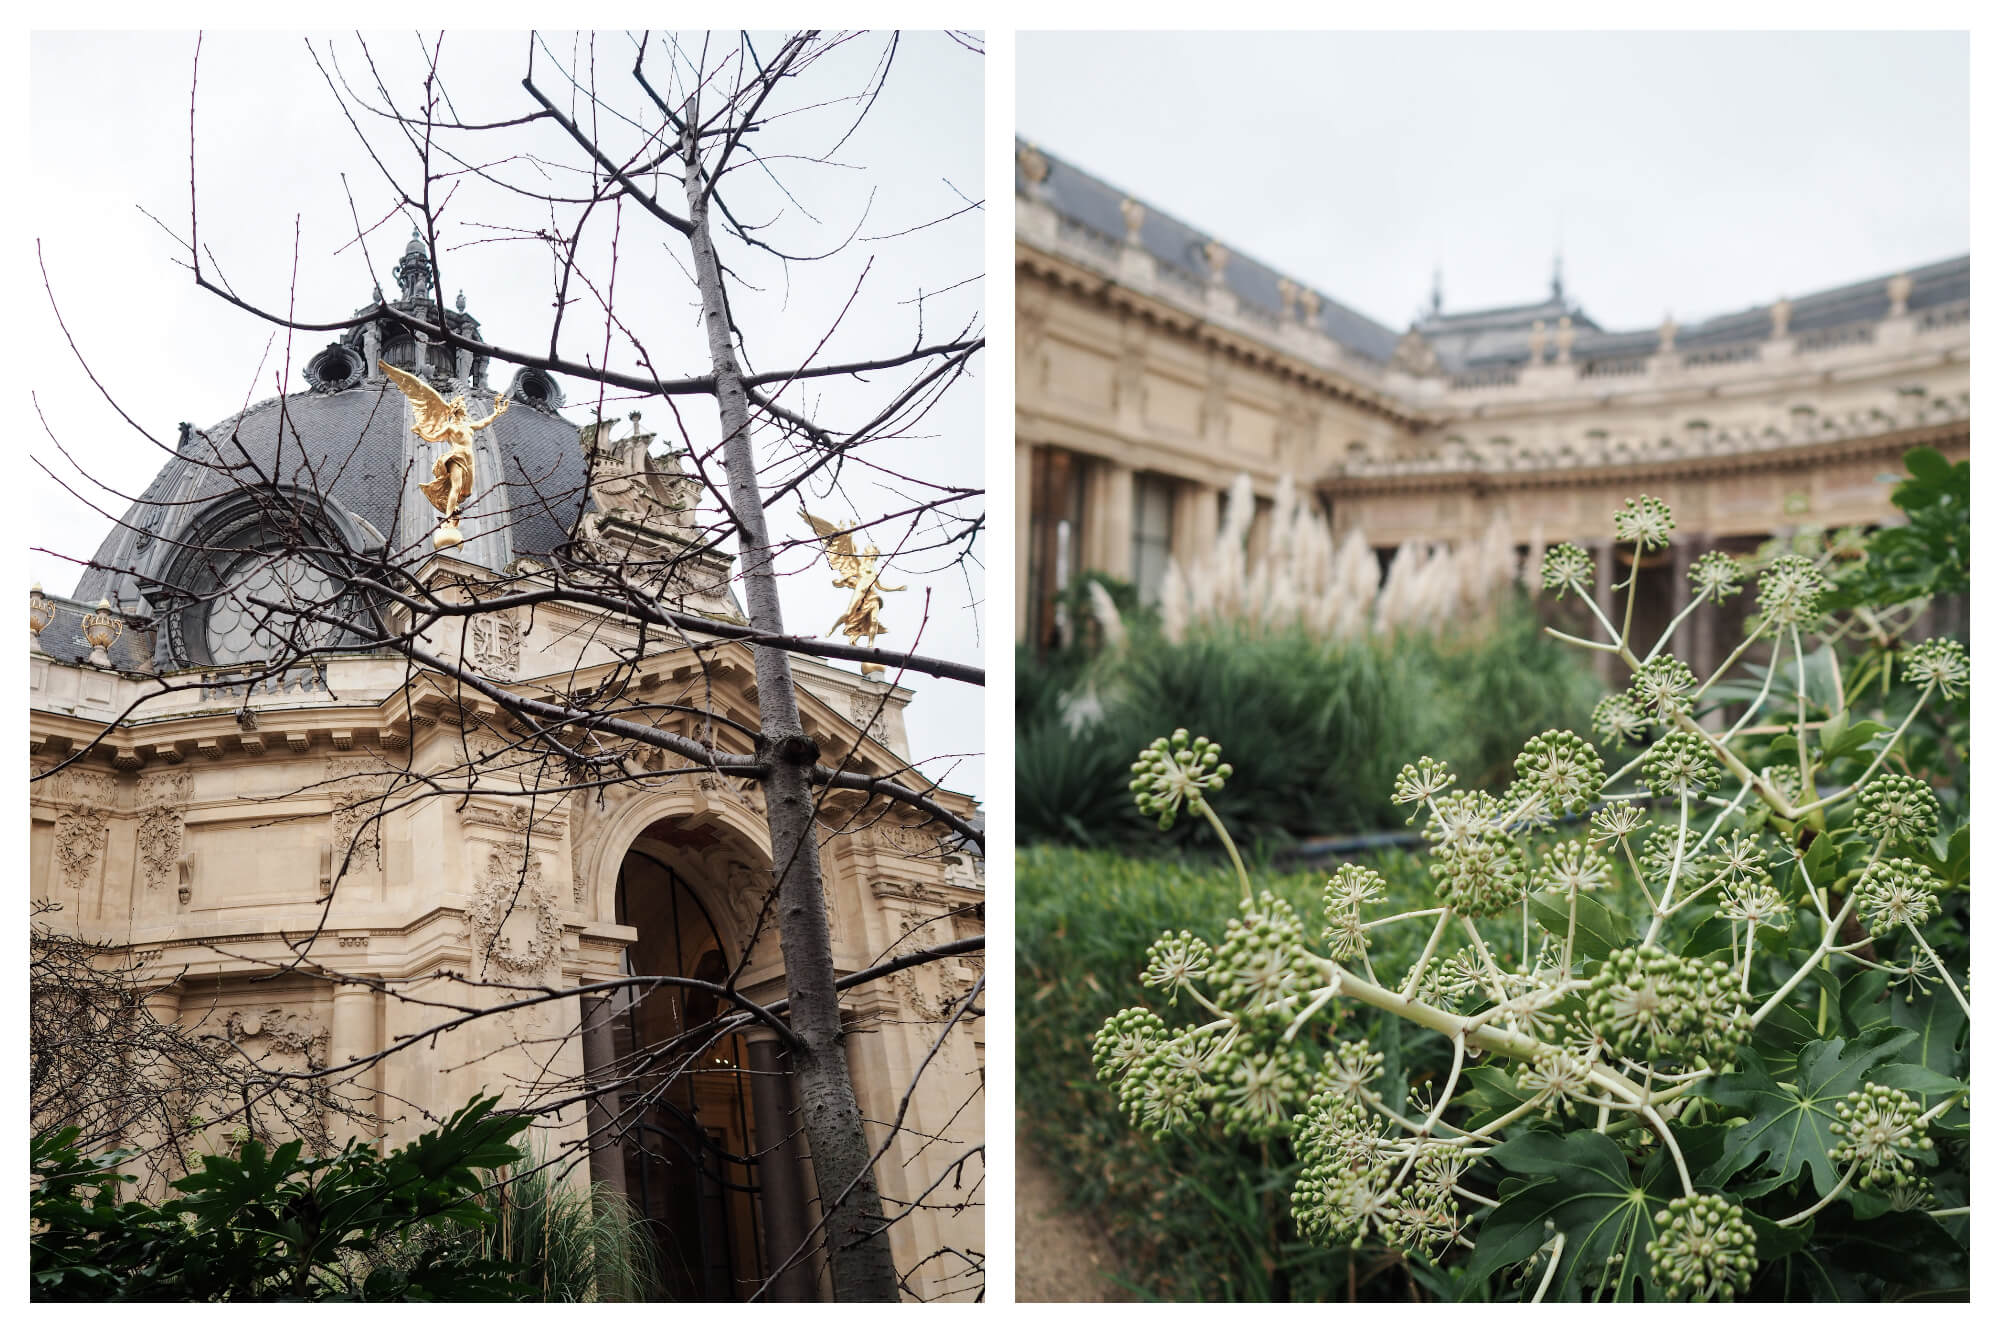 On left: The spindly branches of a tree reach skyward, with the dome of the Petit Palais, Paris' city art museum, rising in the background. On right: Bouncy little flowers begin to sprout in the garden of the Petit Palais, located on the Champs Elysées.